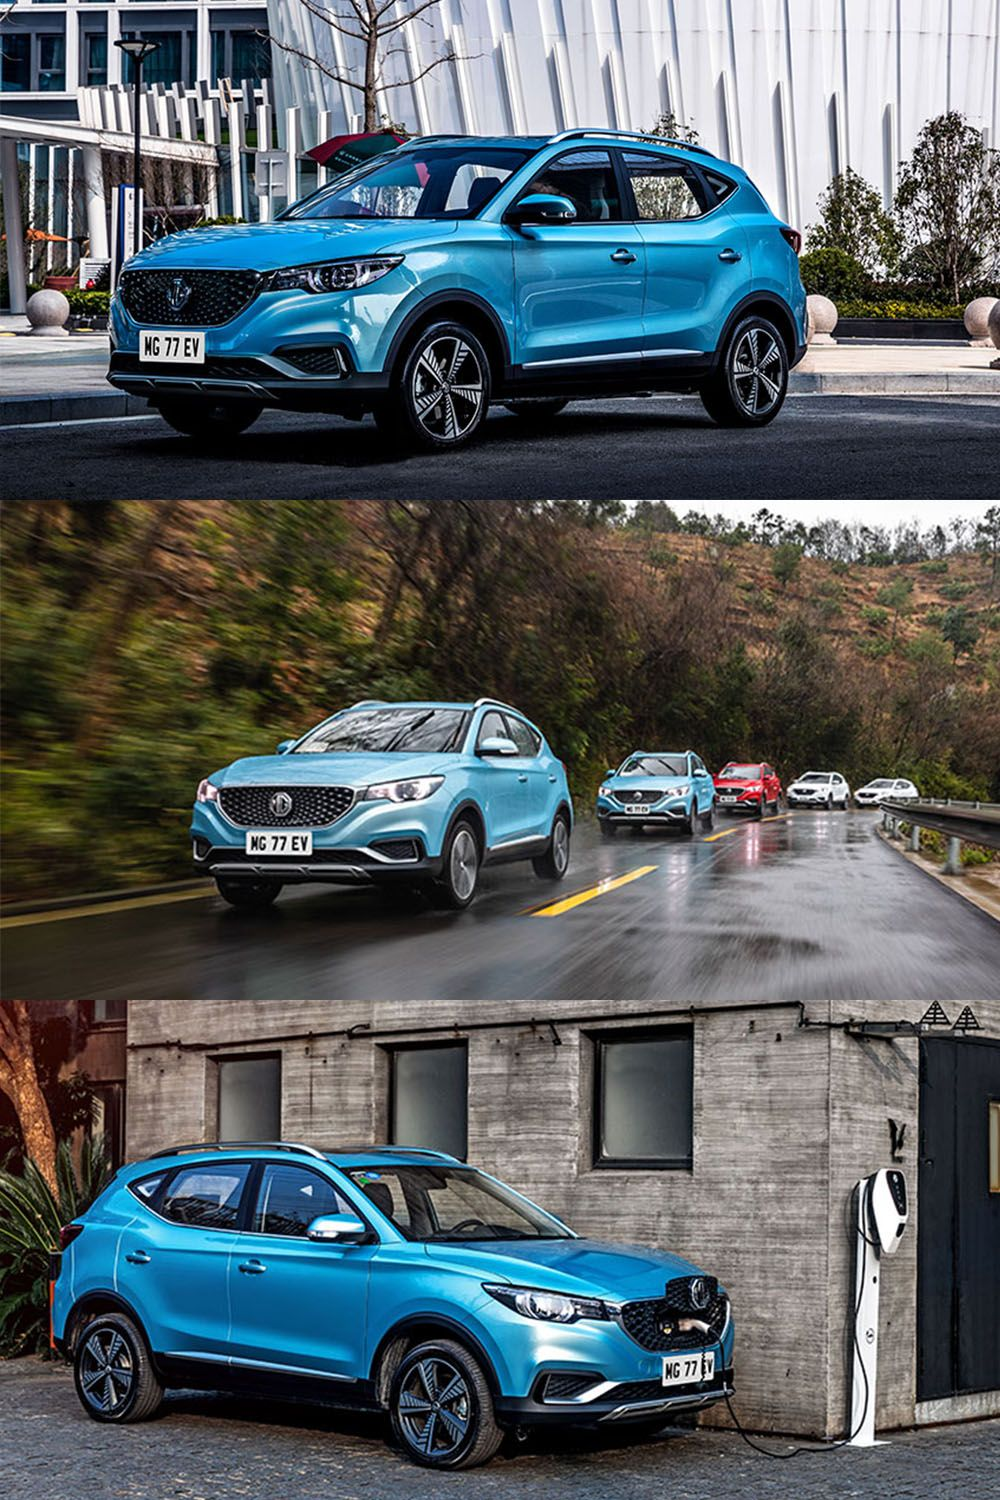 There's a real buzz about MG's all-new electric SUV! The MG ZS EV is a family-friendly SUV that's affordable and doesn't compromise on practicality and performance. Get a closer look at the ZS EV, including its interior, trim and range. #MG #SUV #ElectricCars #ElectricSUVs #Car #Review